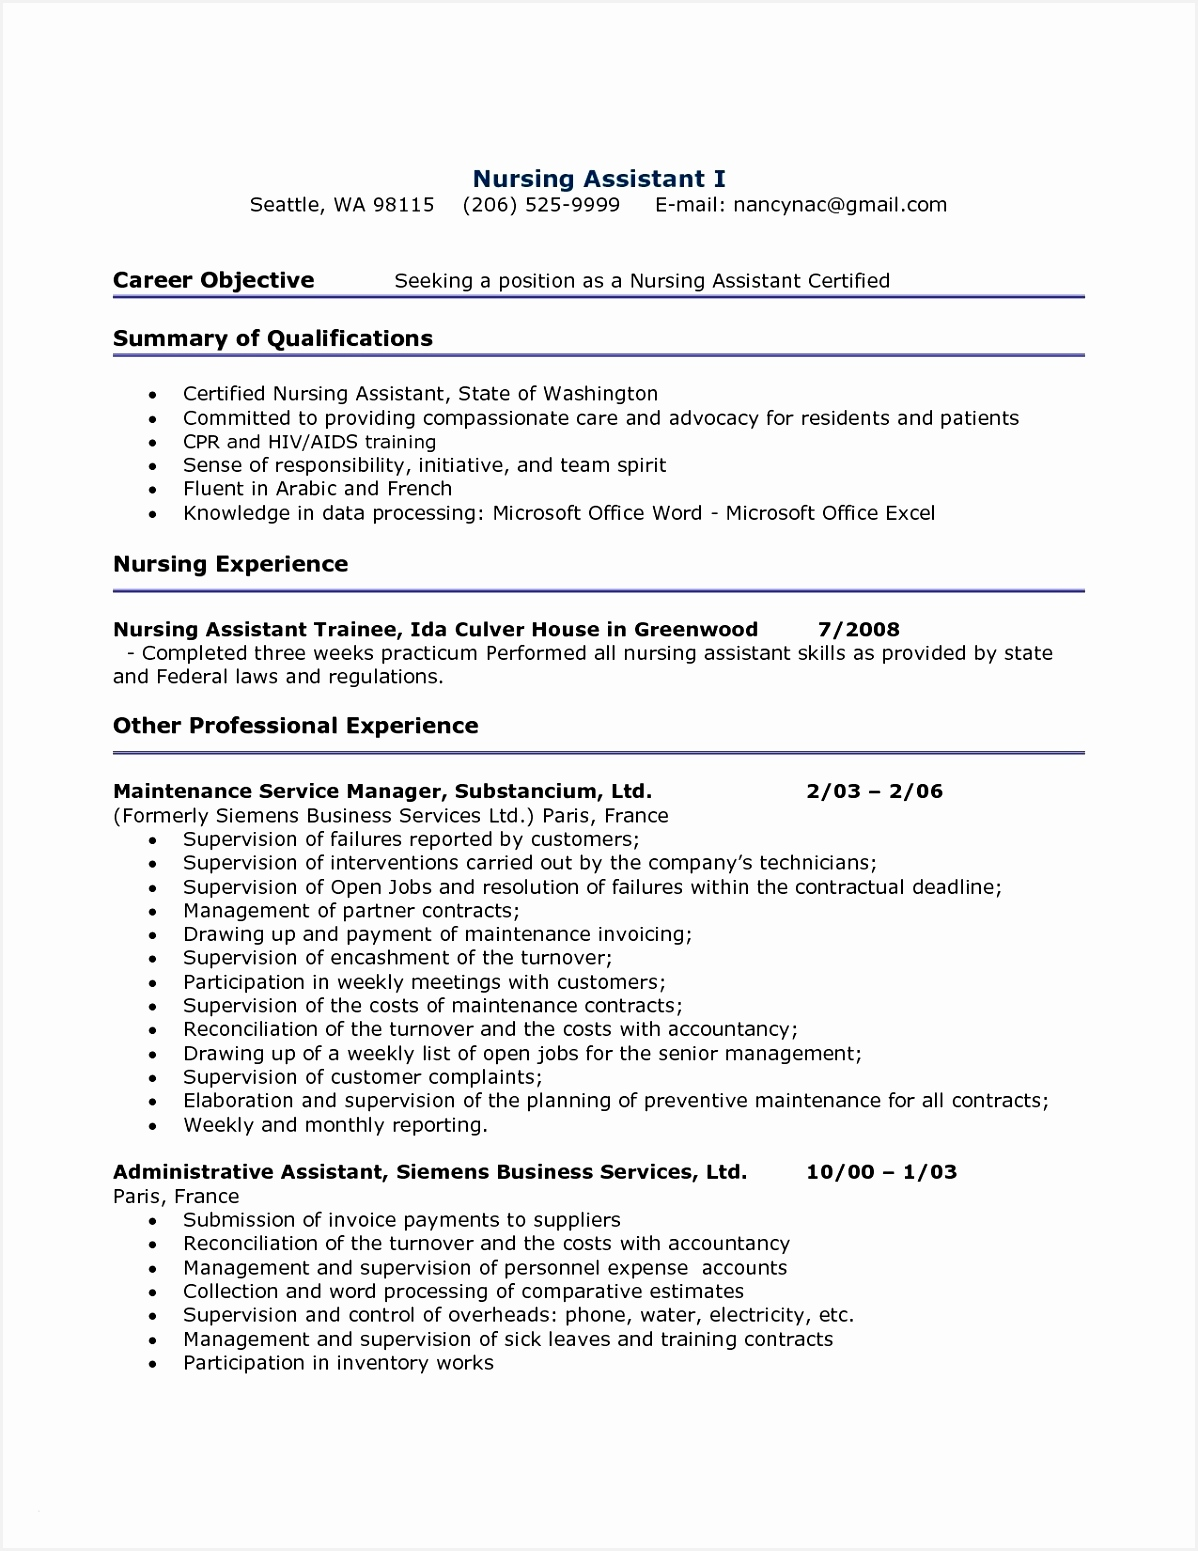 Contract Stress Engineer Sample Resume Ooj3g Luxury Resume Examples Mechanical Engineer Archives Margorochelle Of Contract Stress Engineer Sample Resume Ooj3g Luxury Resume Examples Mechanical Engineer Archives Margorochelle